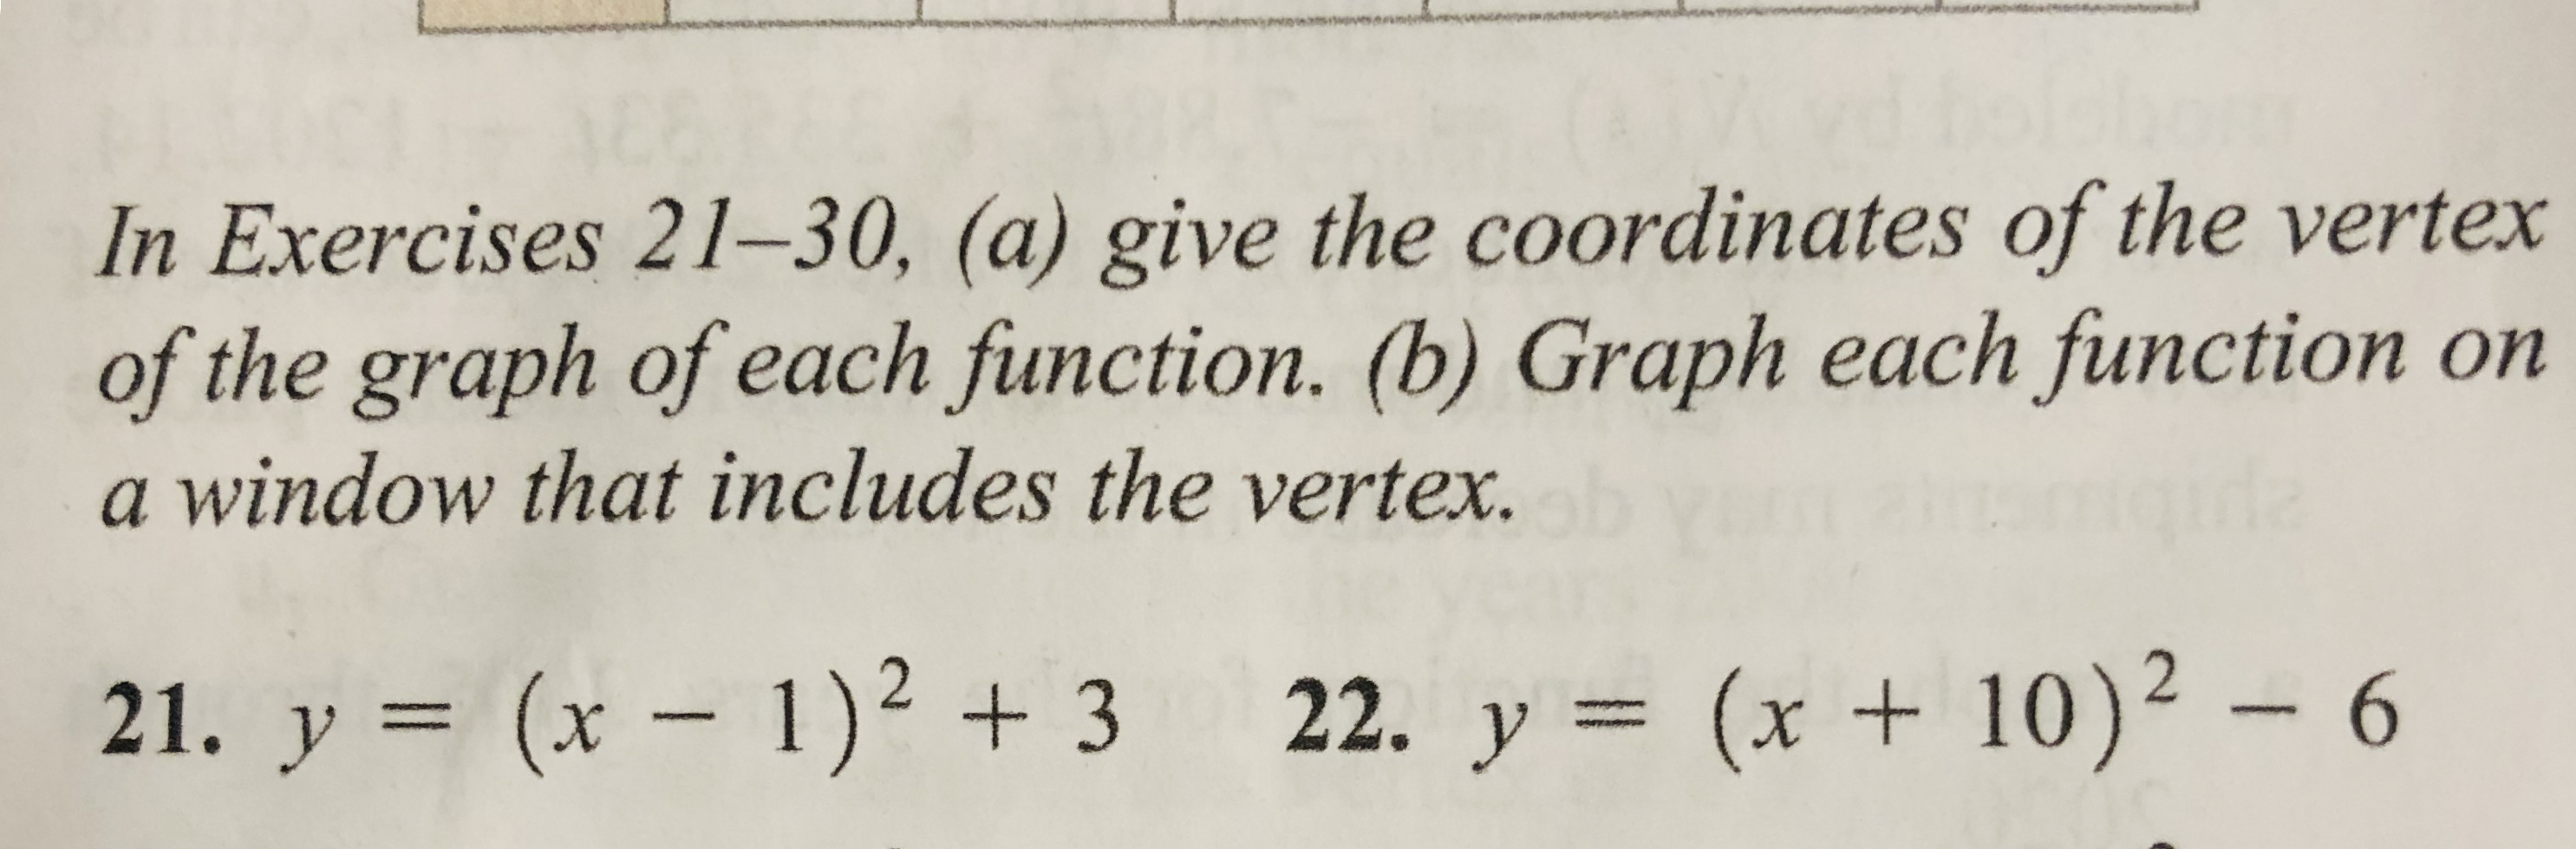 In Exercises 21–30, (a) give the coordinates of the vertex of the graph of each function. (b) Graph each function on a window that includes the vertex. gida (x +10)² 21. y = (x – 1)² + 3 22. y = (x + 10)² – 6